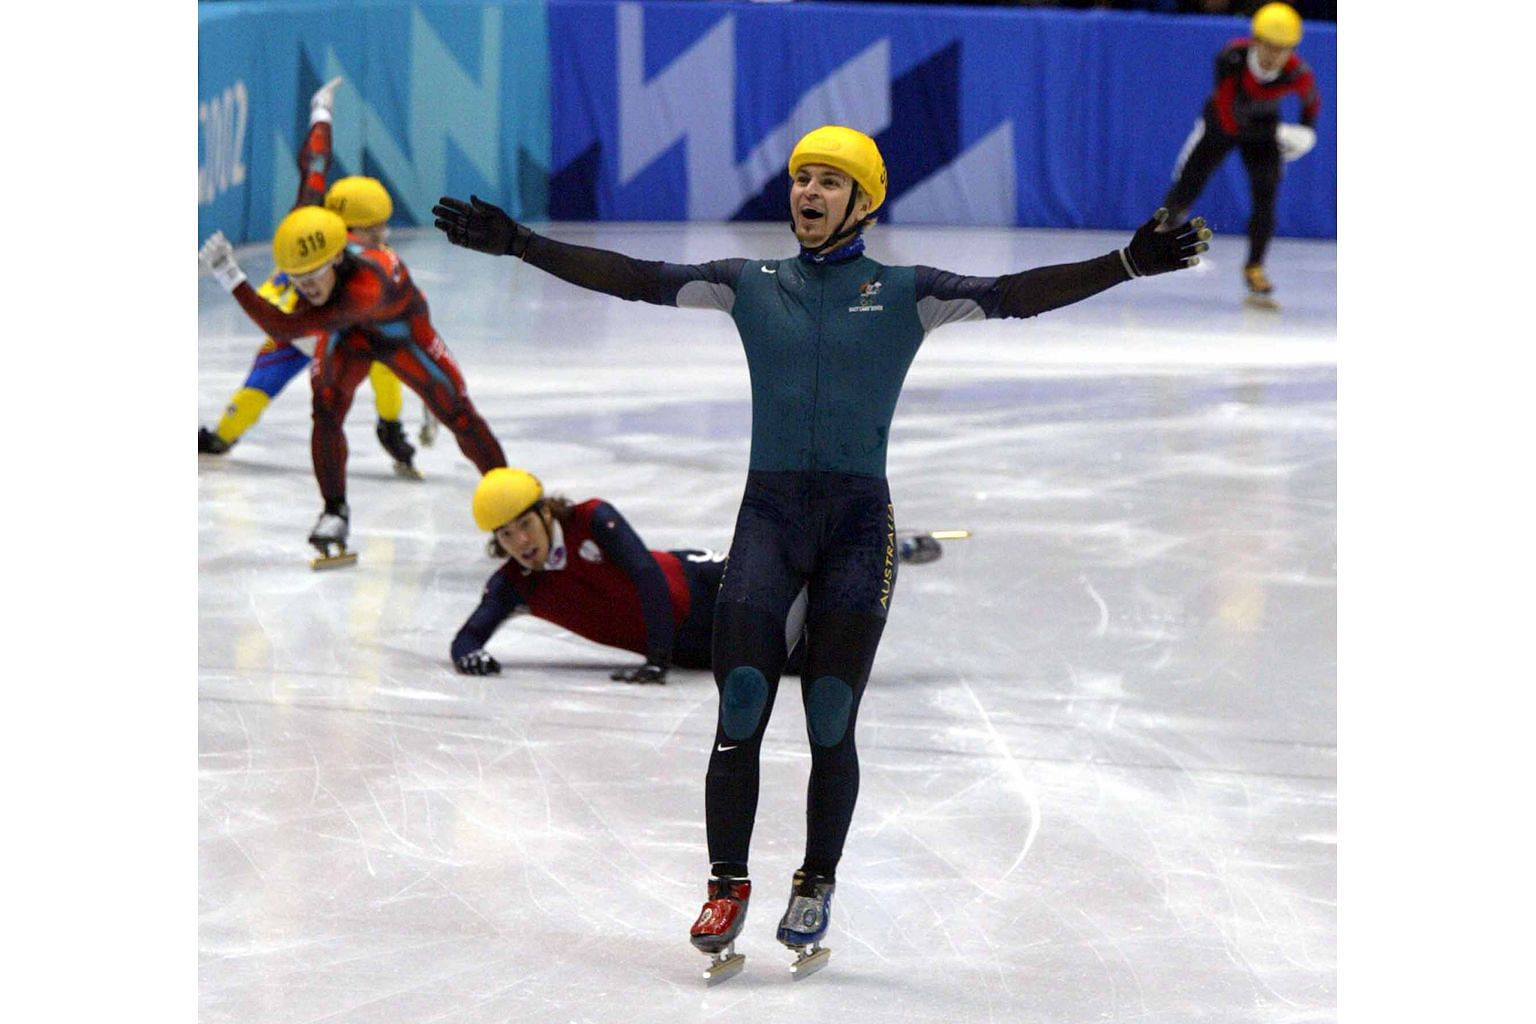 Steven Bradbury of Australia lifting his arms aloft after winning Olympic gold in the 1,000m short track speed skating final in 2002. He skated past the US' Apolo Ohno, Canada's Mathieu Turcotte, South Korean Ahn Hyun-soo and China's Li Jiajun, all o